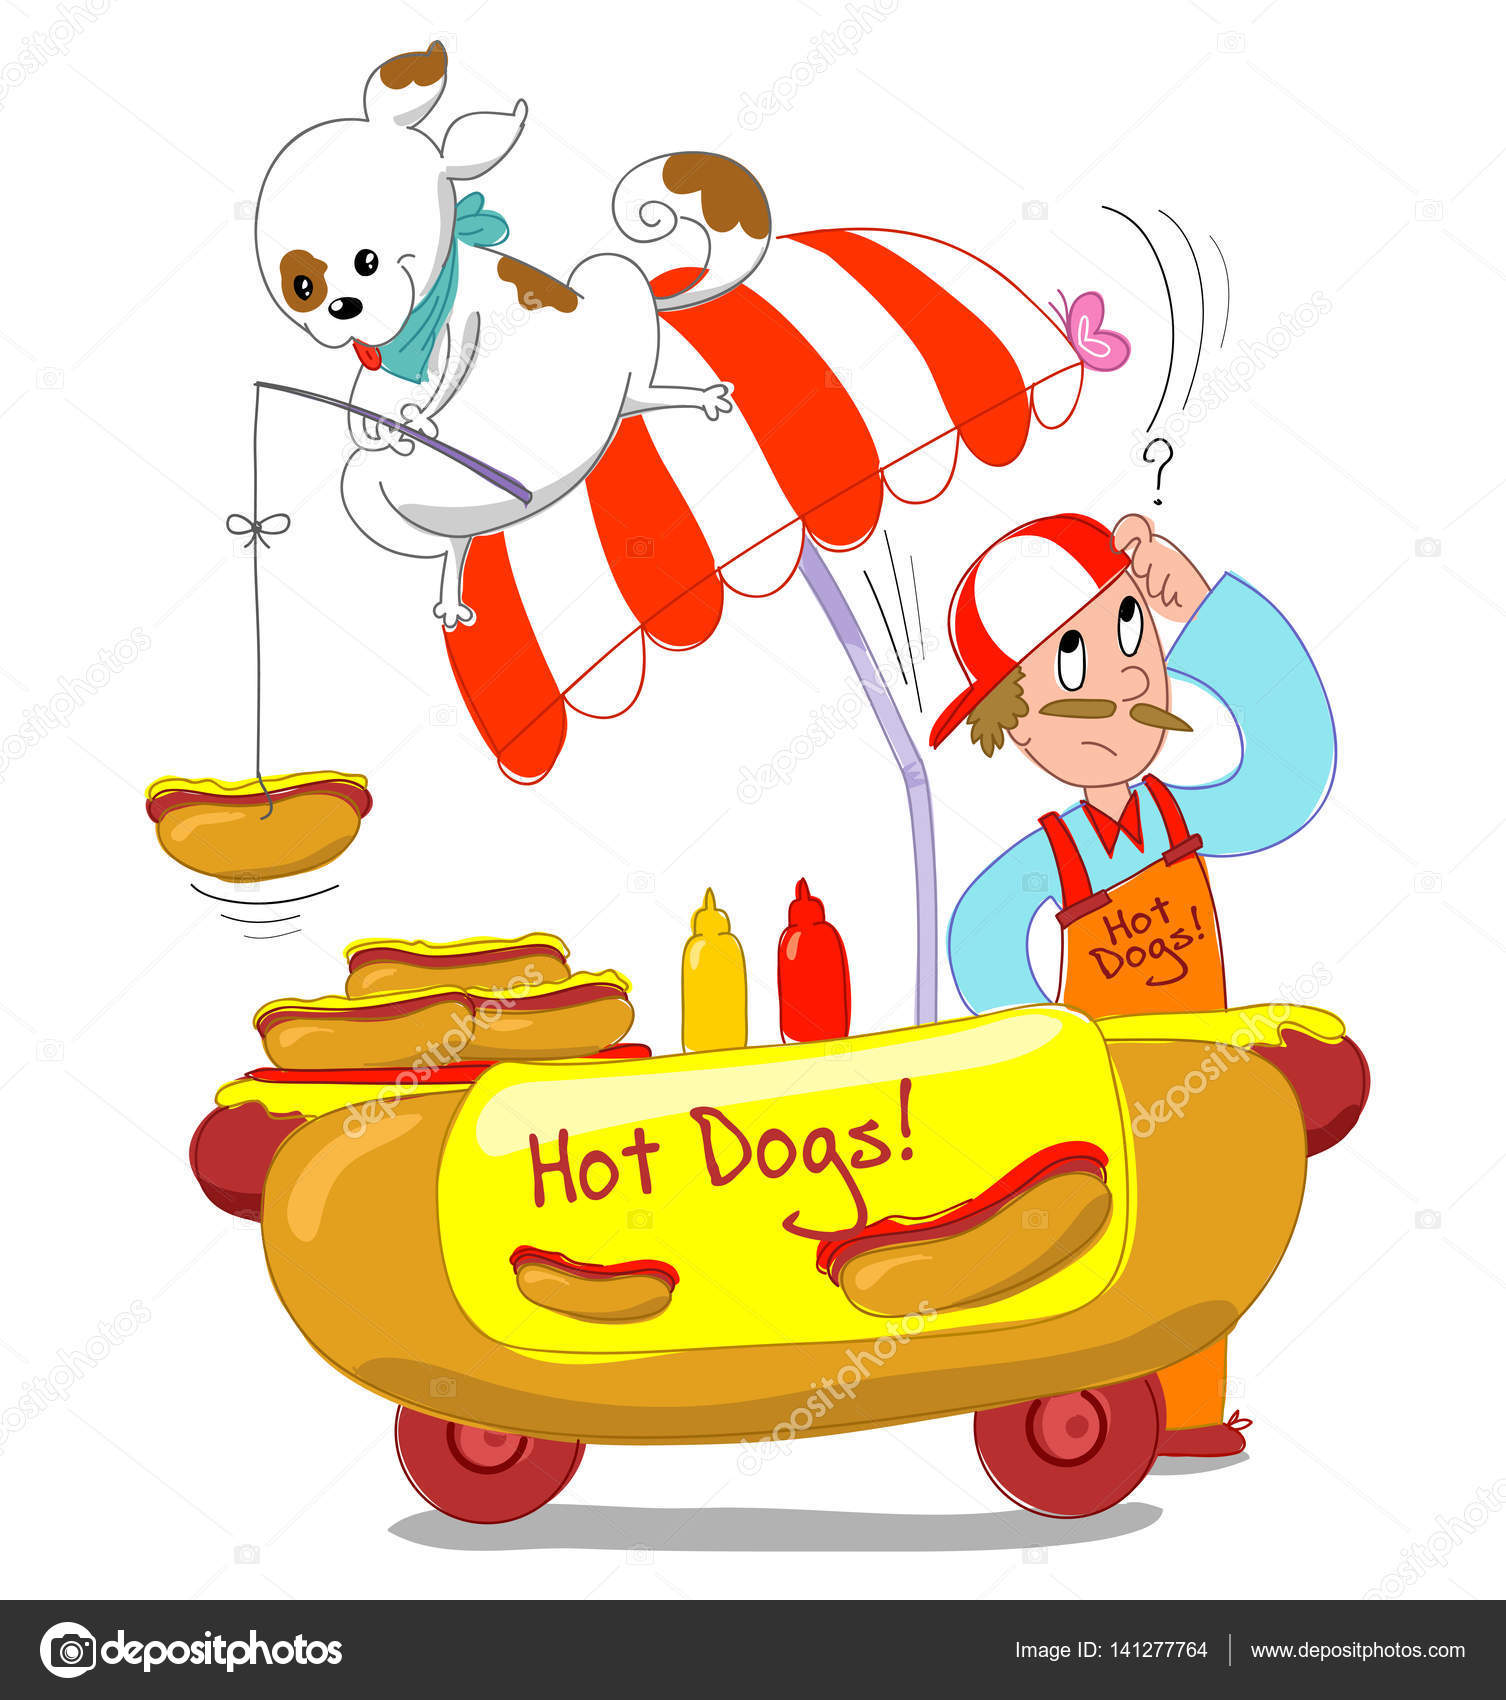 Hot Dogs Cartoon Illustration Stock Photo Carlacastagno 141277764